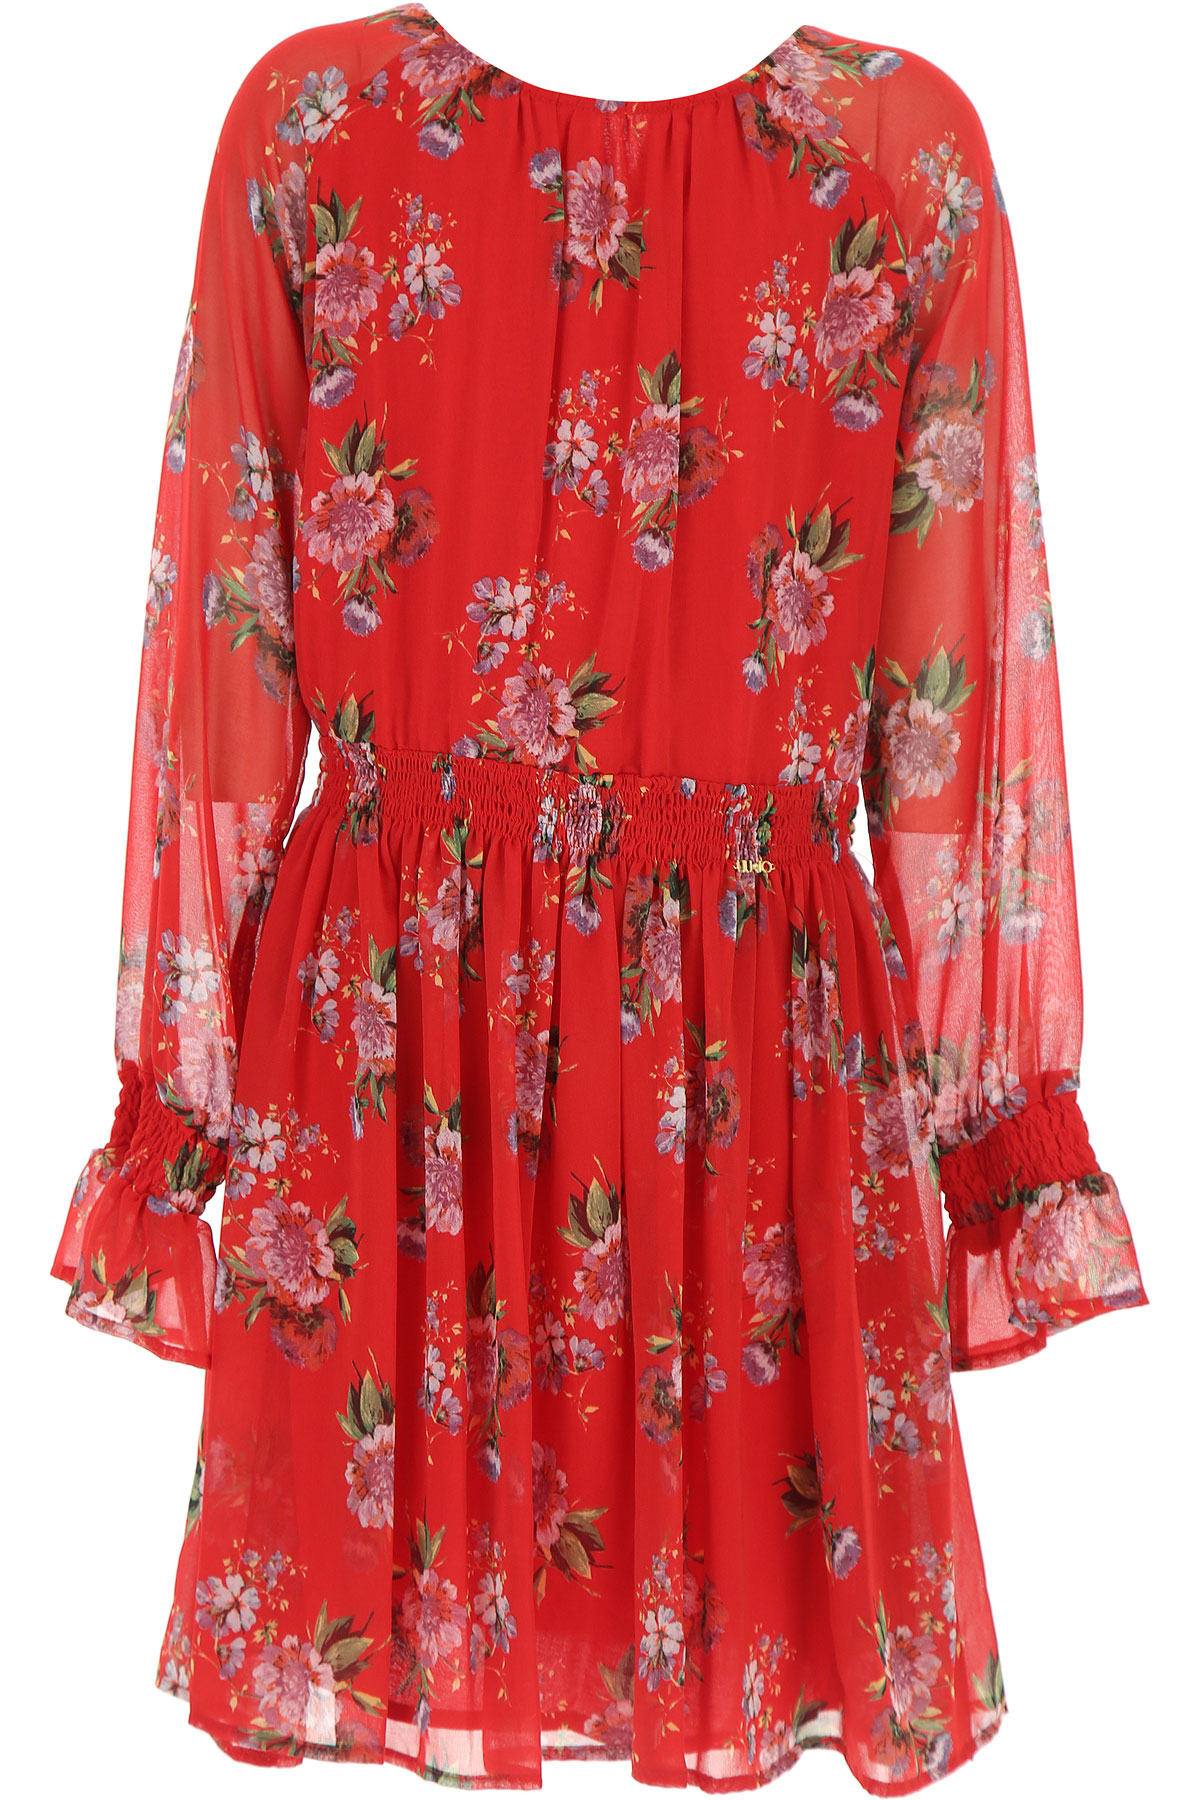 Image of Liu Jo Girls Dress, Red, polyester, 2017, 14Y 16Y